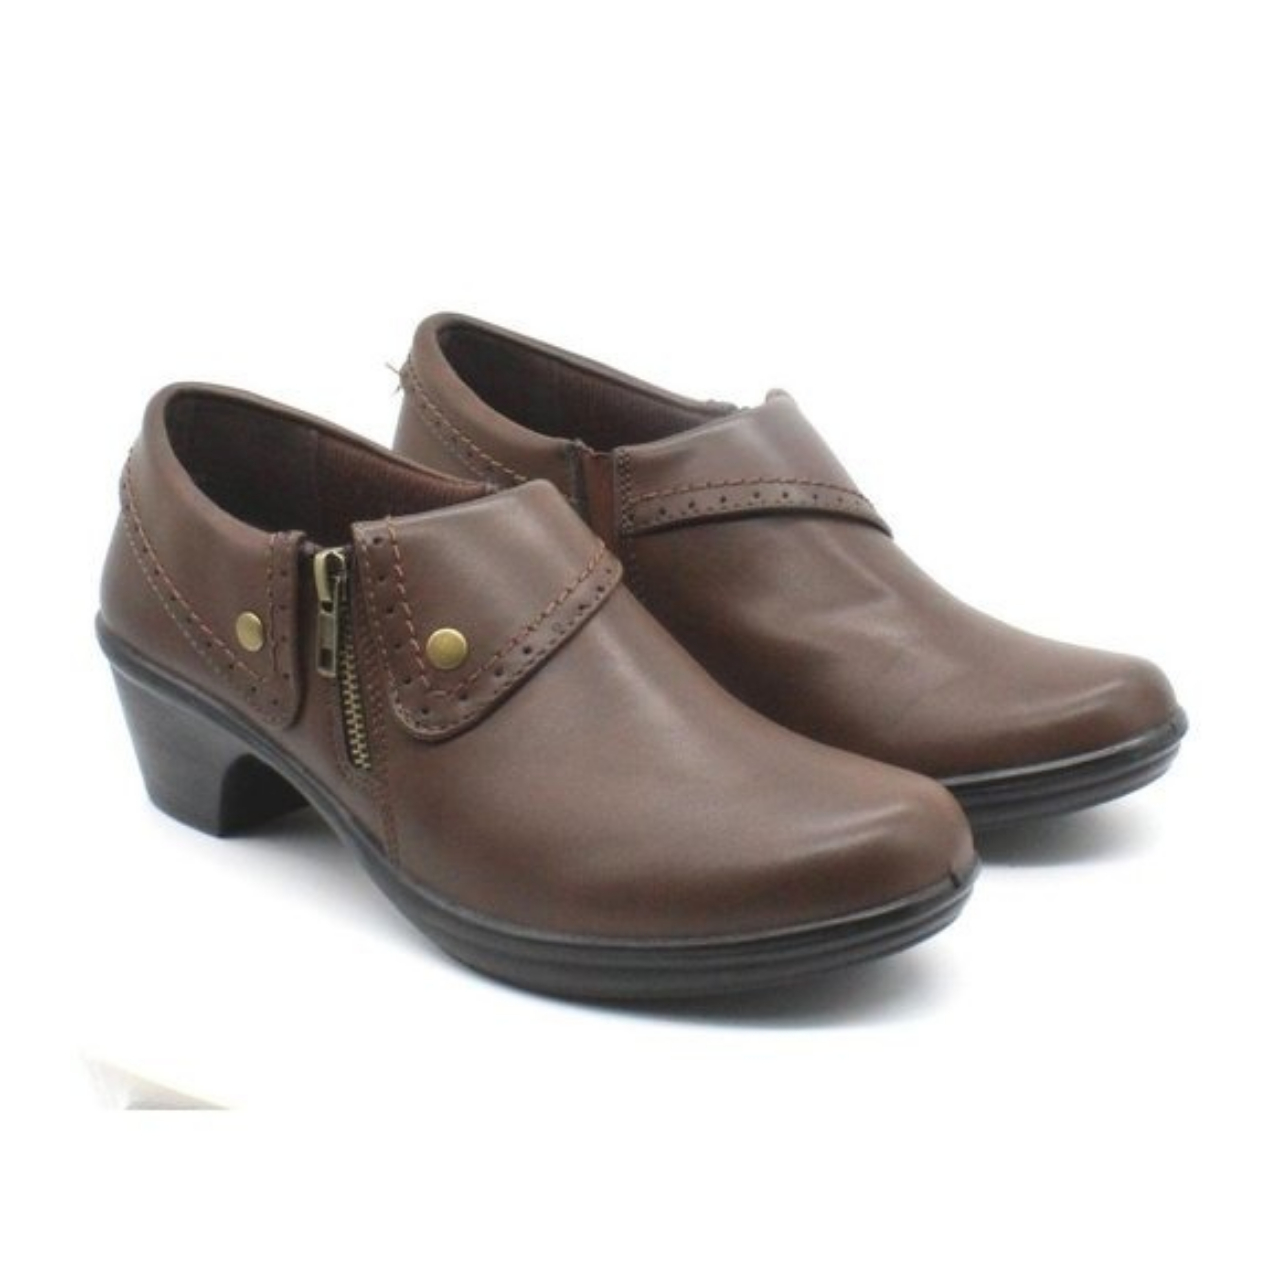 Product Image 1 - Easy Street Darcy Clogs Women's